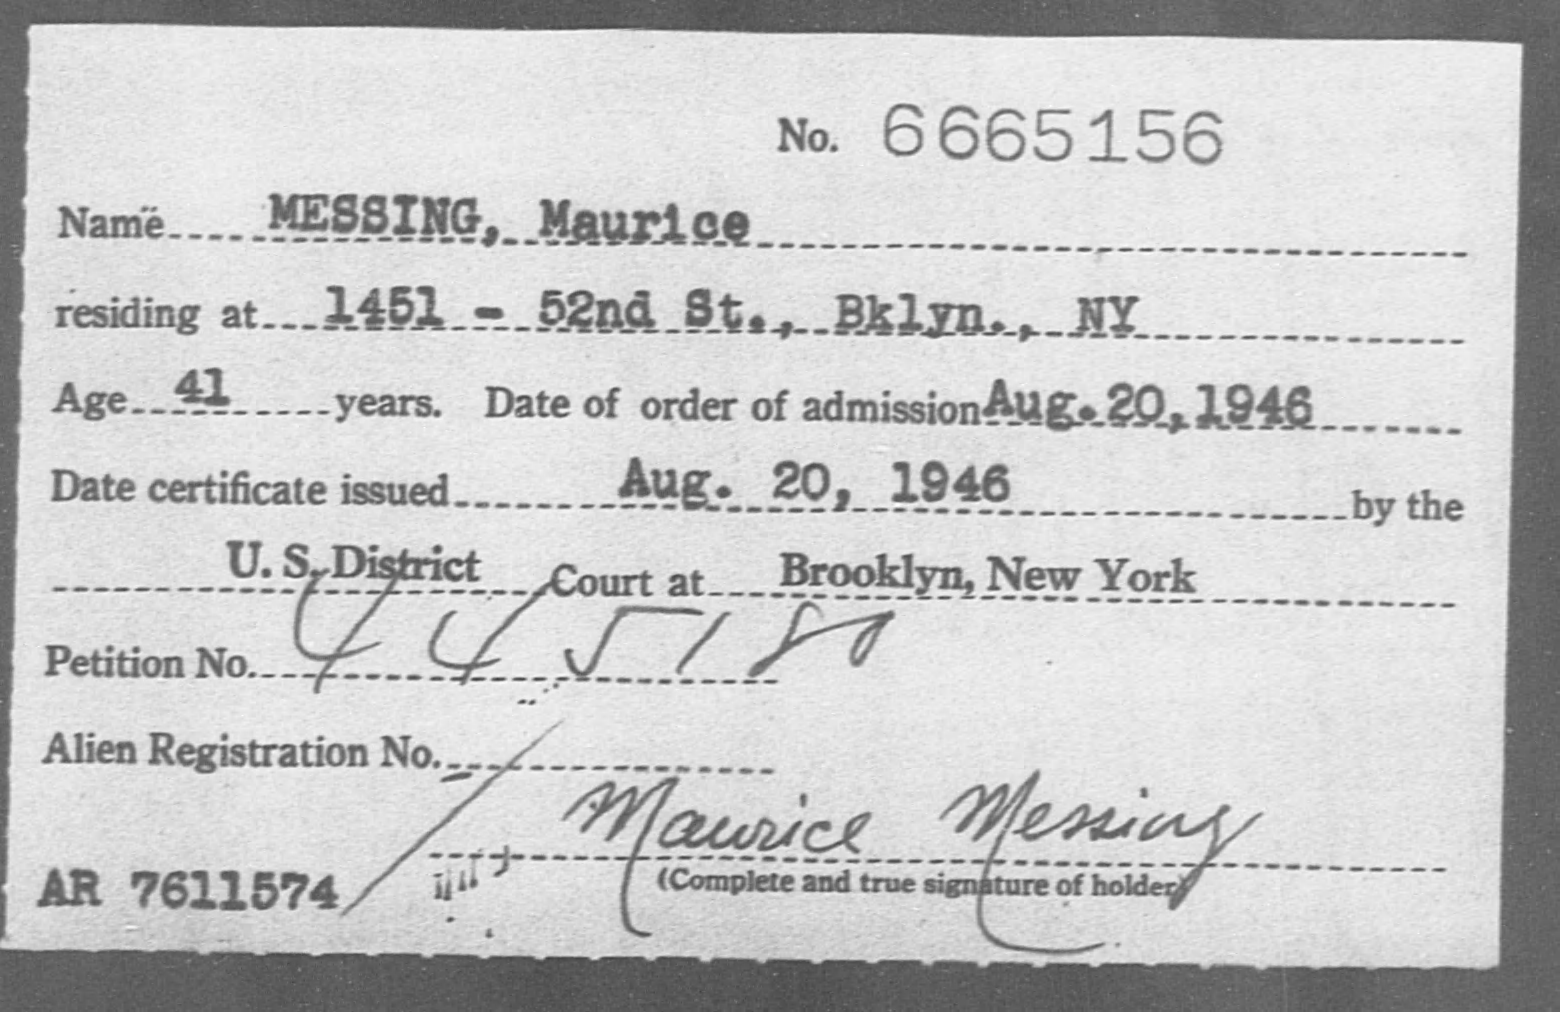 MESSING, Maurice - Born: [BLANK], Naturalized: 1946